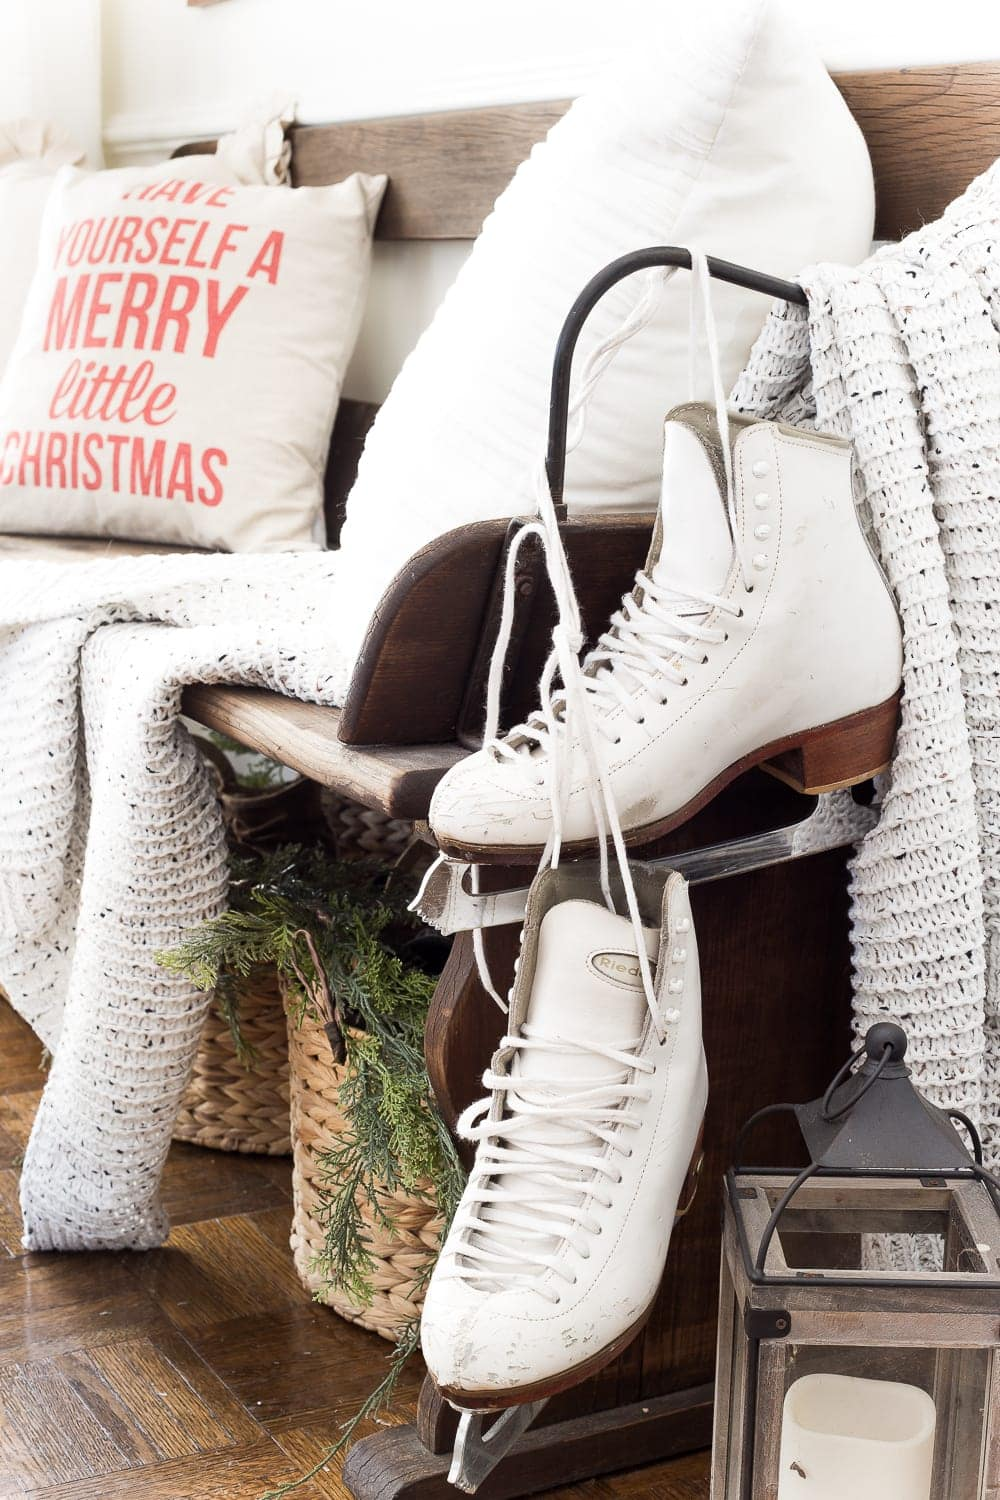 Thrifty Christmas decorating idea: Use thrifted ice skates as decor accents